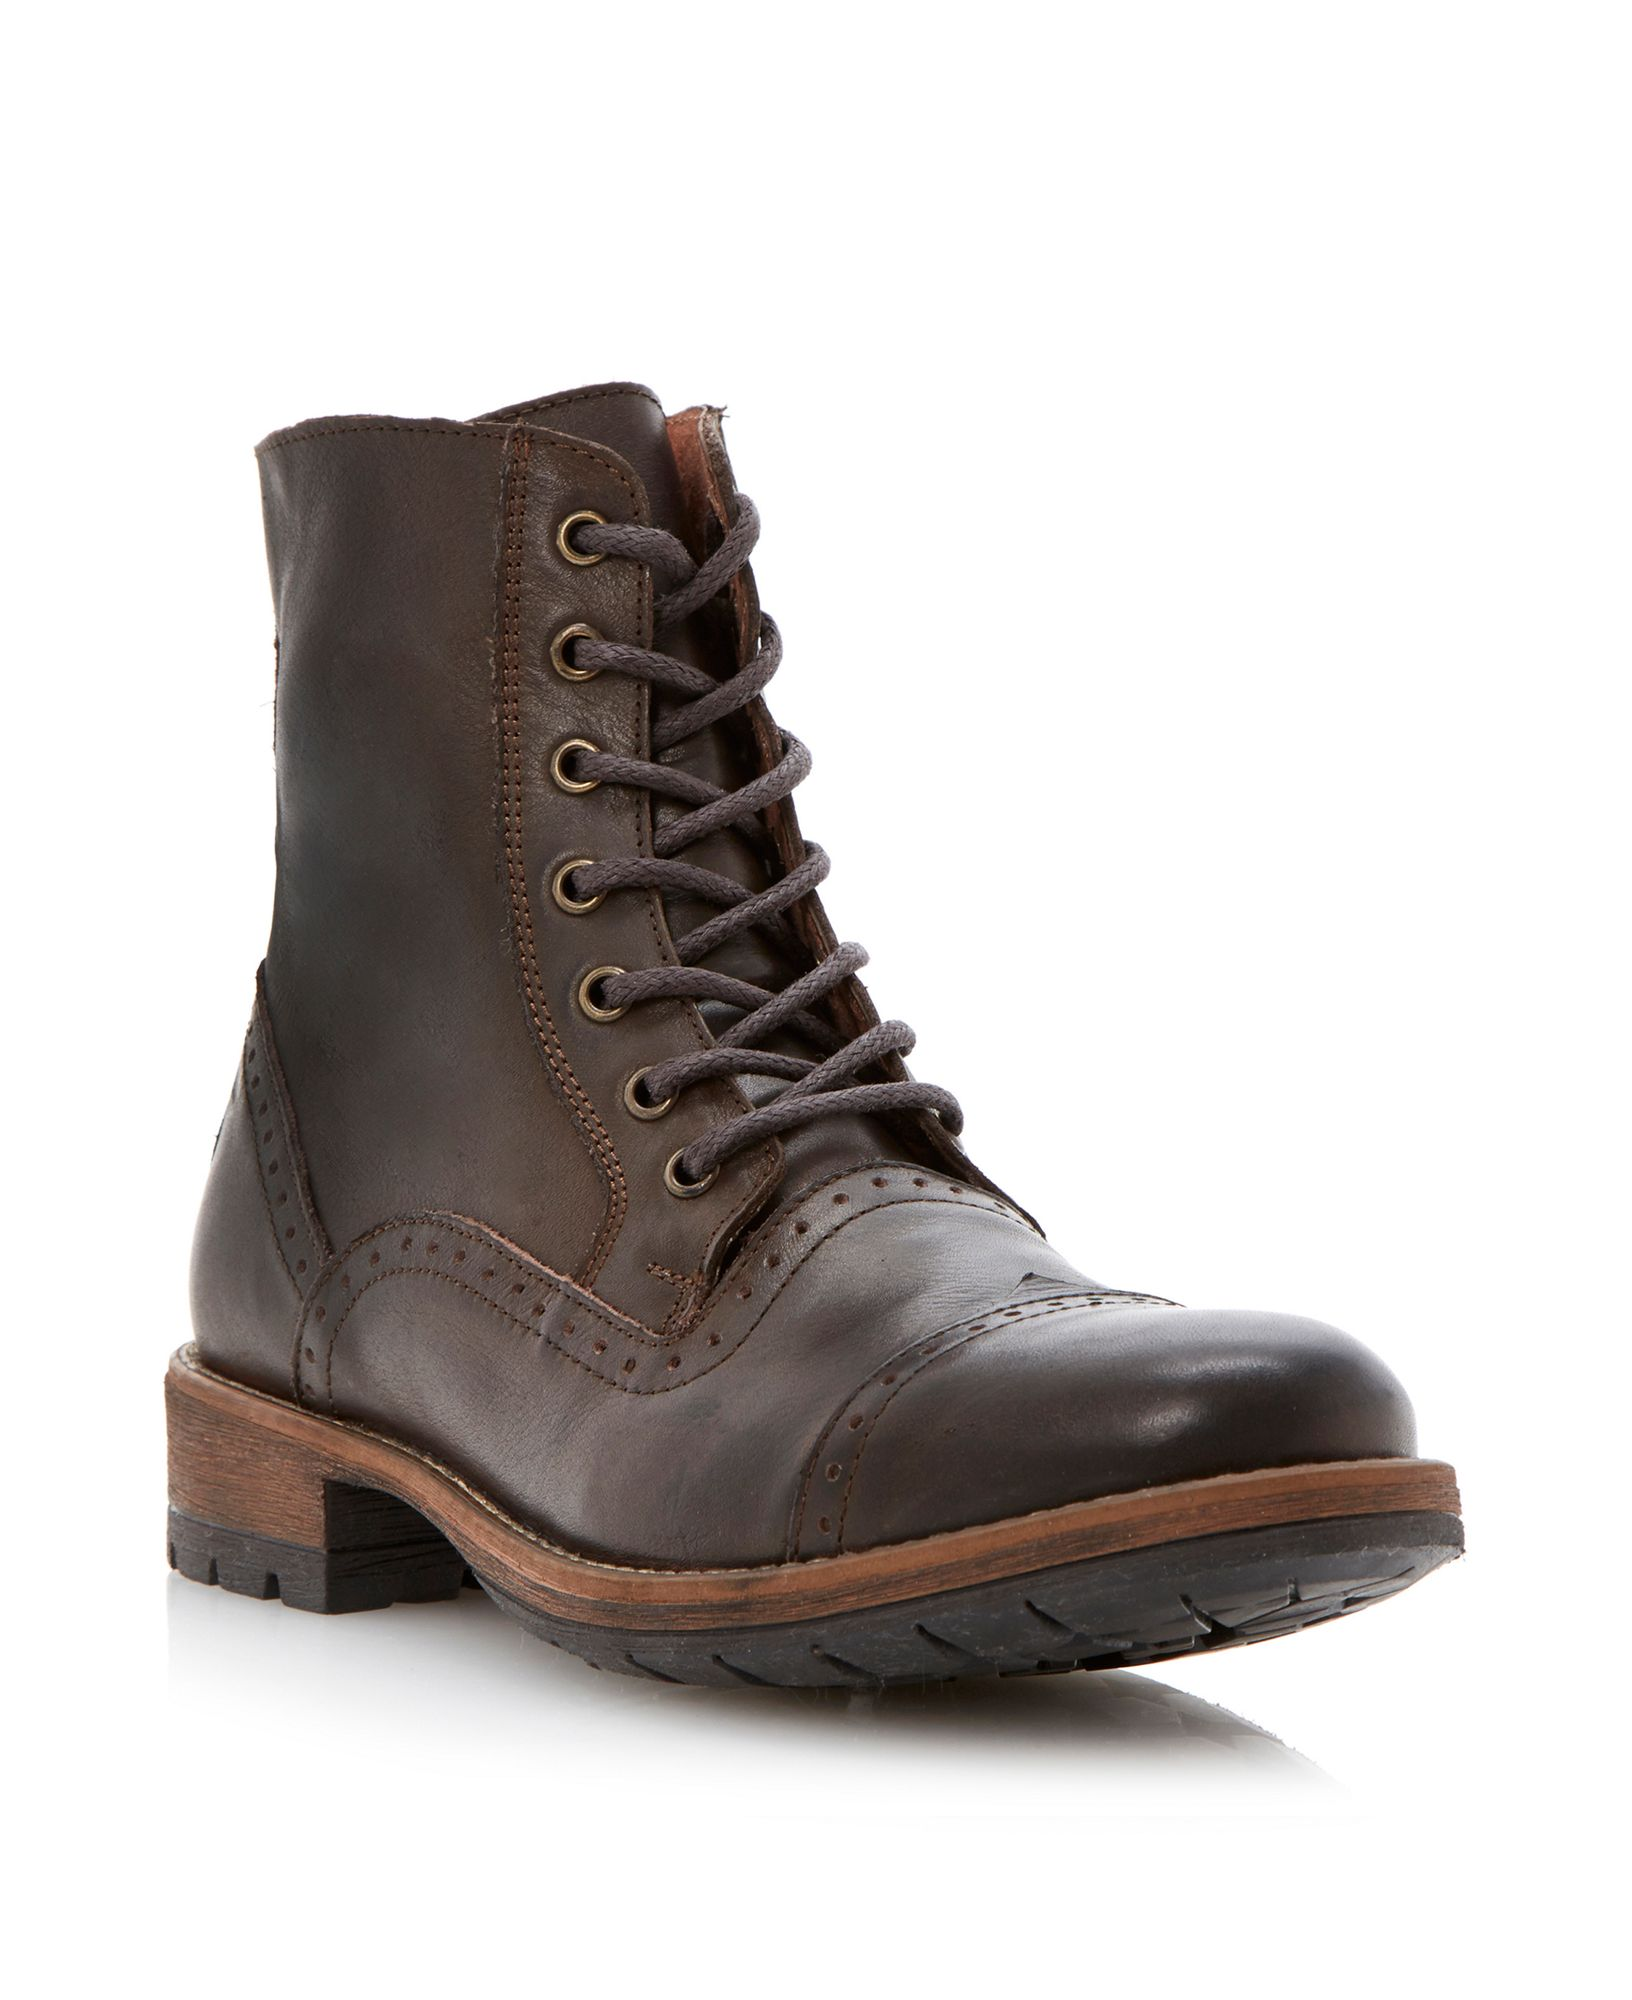 steve madden nathen brogue toecap heavy boots in brown for. Black Bedroom Furniture Sets. Home Design Ideas